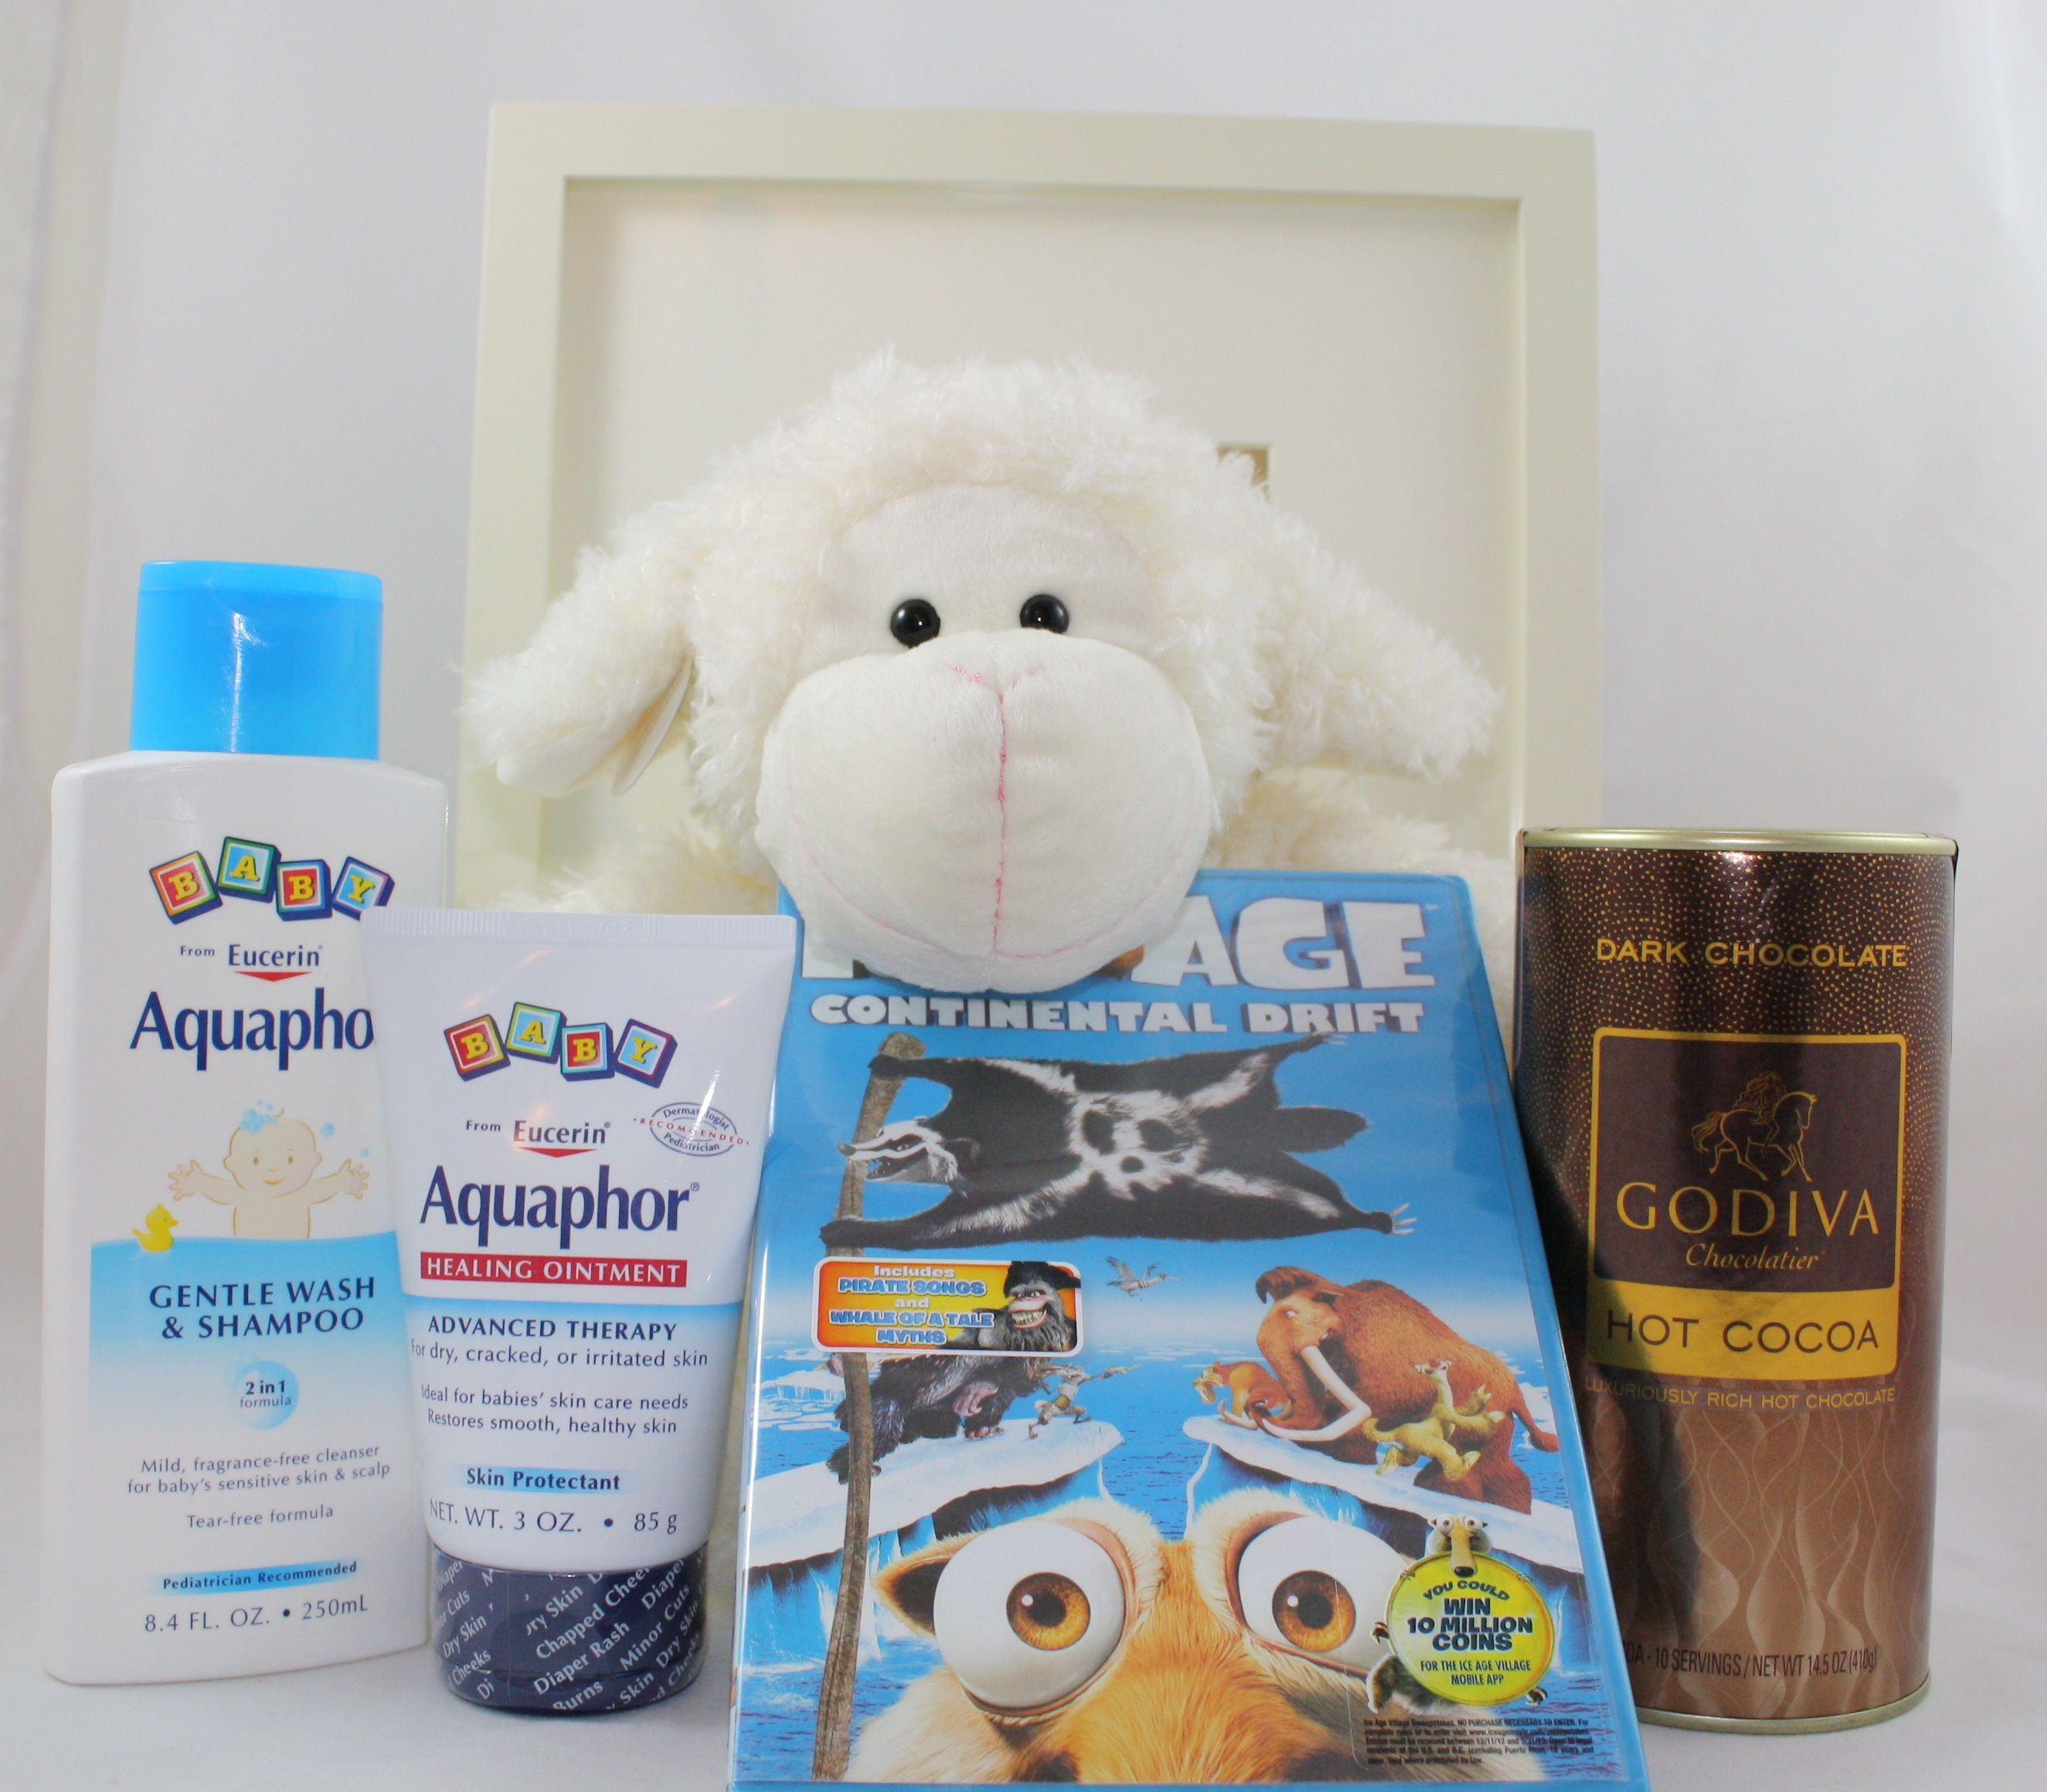 Aquaphor #WorksWonders Prize Pack